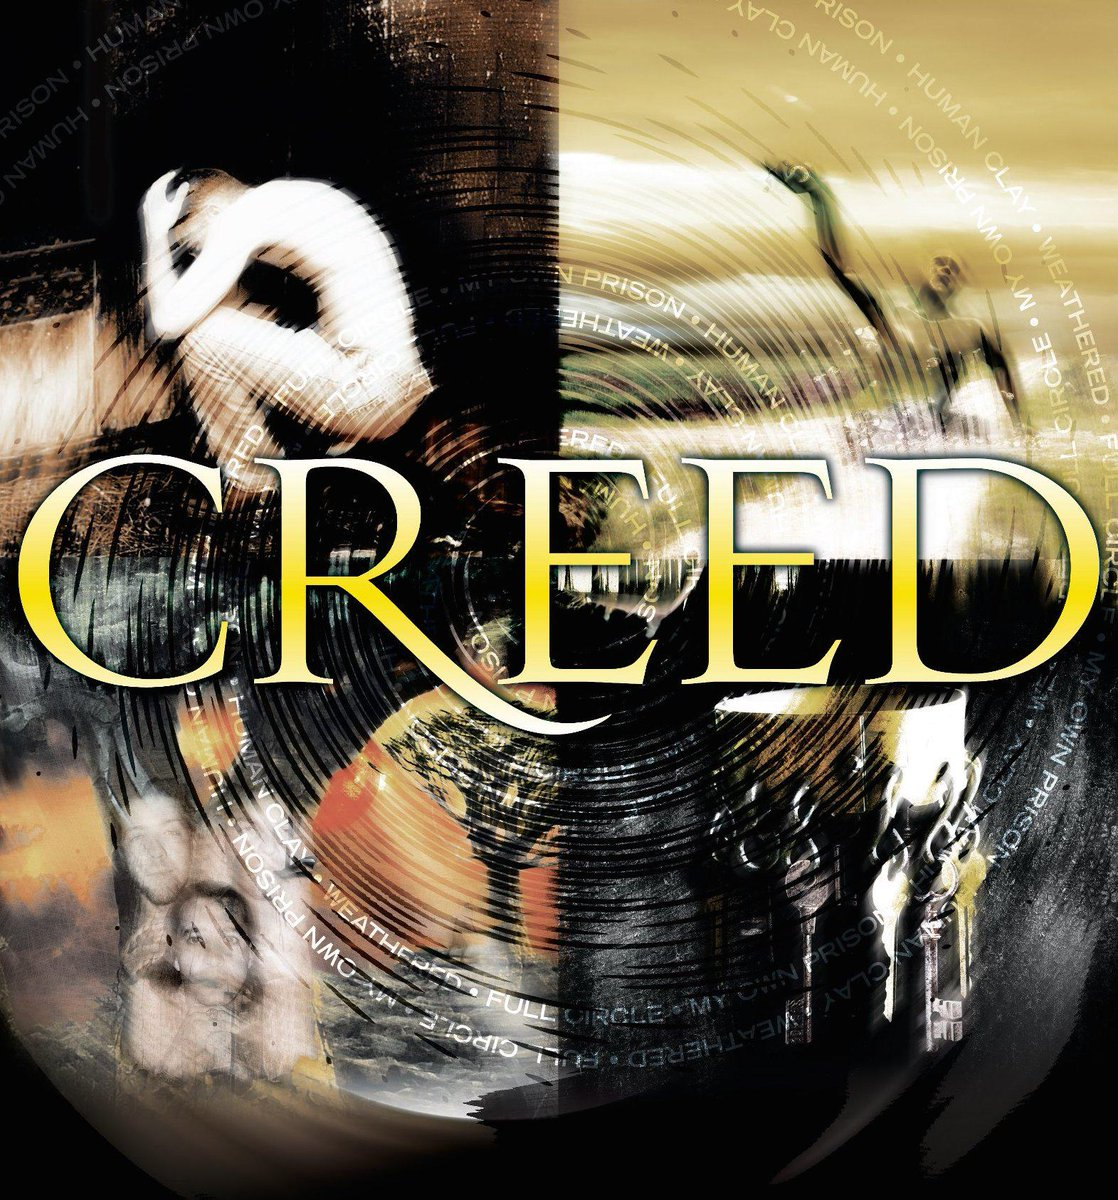 For the #Creed collectors, would you want to see the Creed catalog released on vinyl in 2016? http://t.co/A31VGo46SW